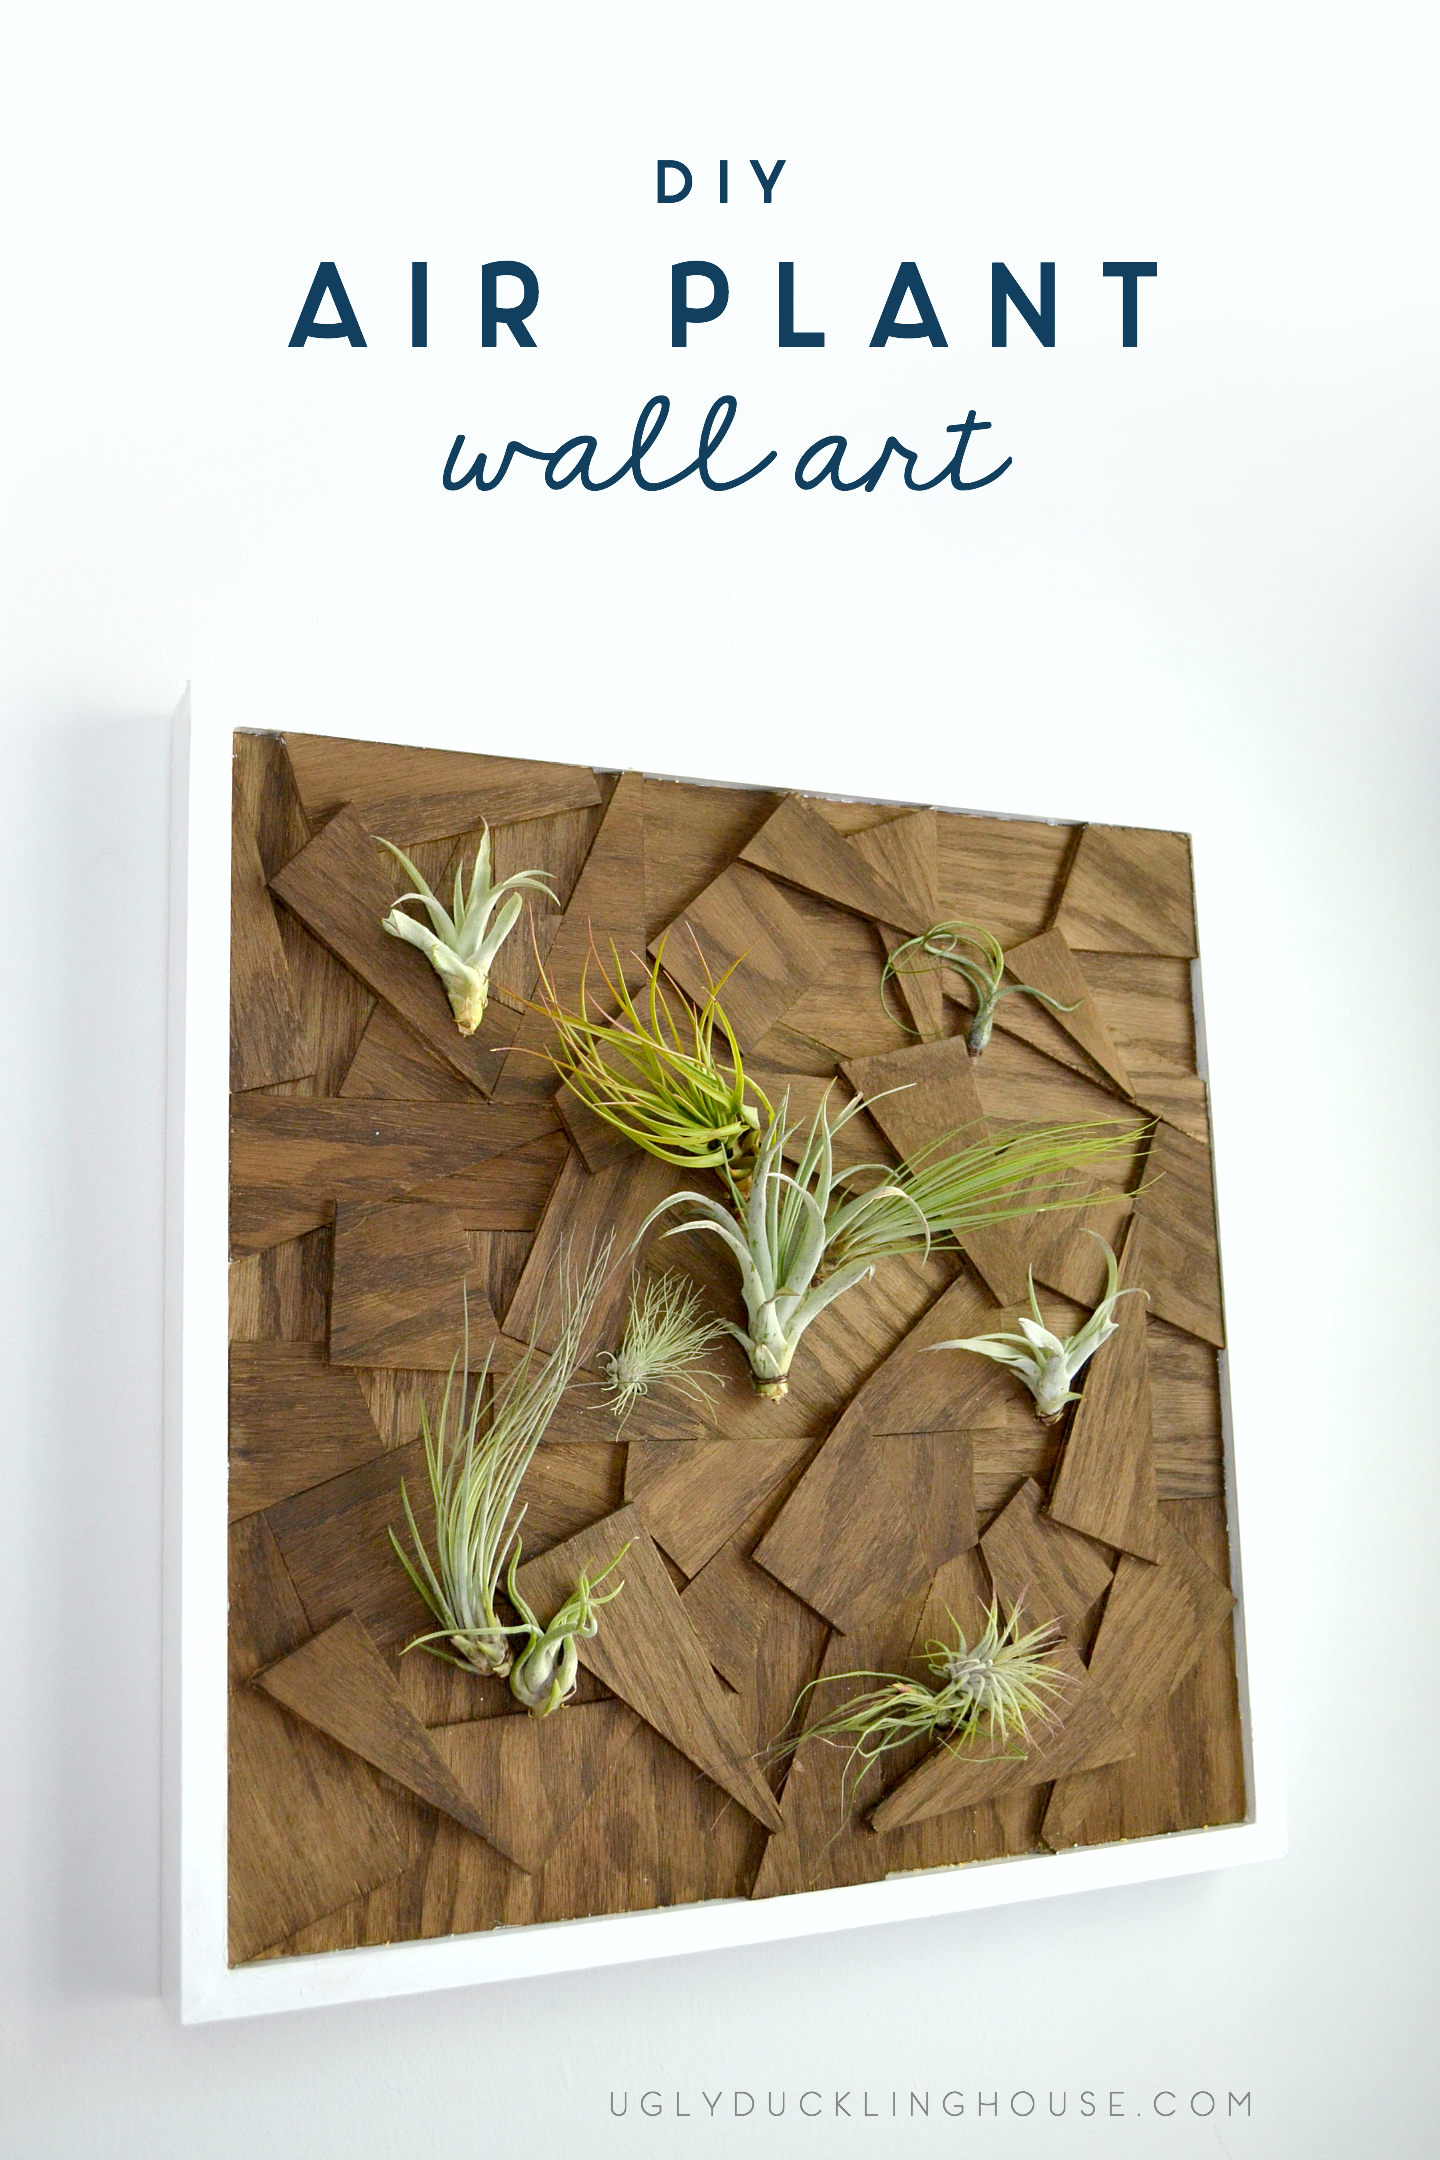 This DIY air plant wall art is made from scrap wood and looks stunning in any room.